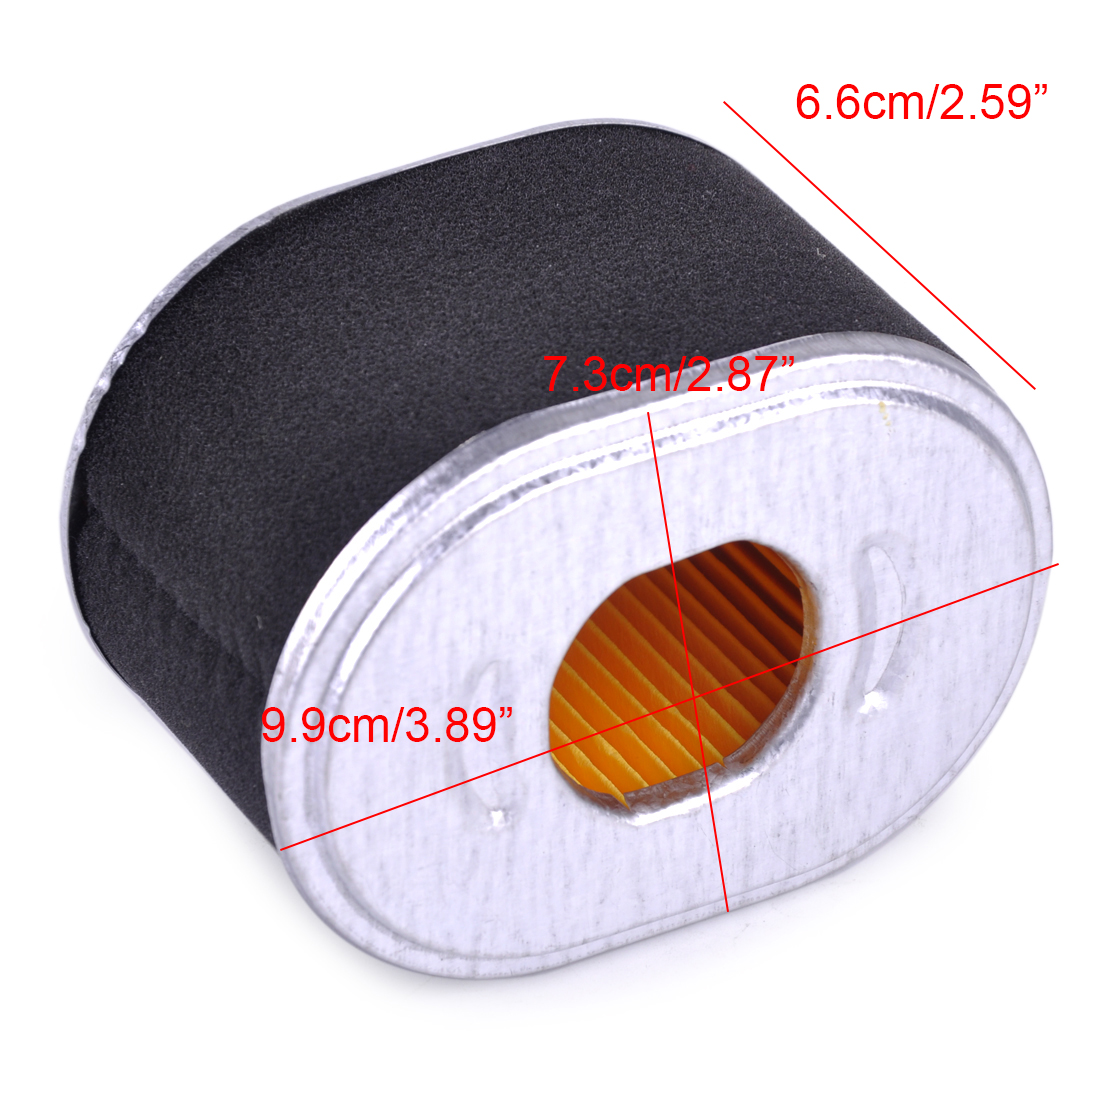 LETAOSK New Air Filter Replacement Accessories Fit For Honda GX160 55HP GX200 65HP Lawnmower 17210 ZE1 822 In Tool Parts From Tools On Aliexpress